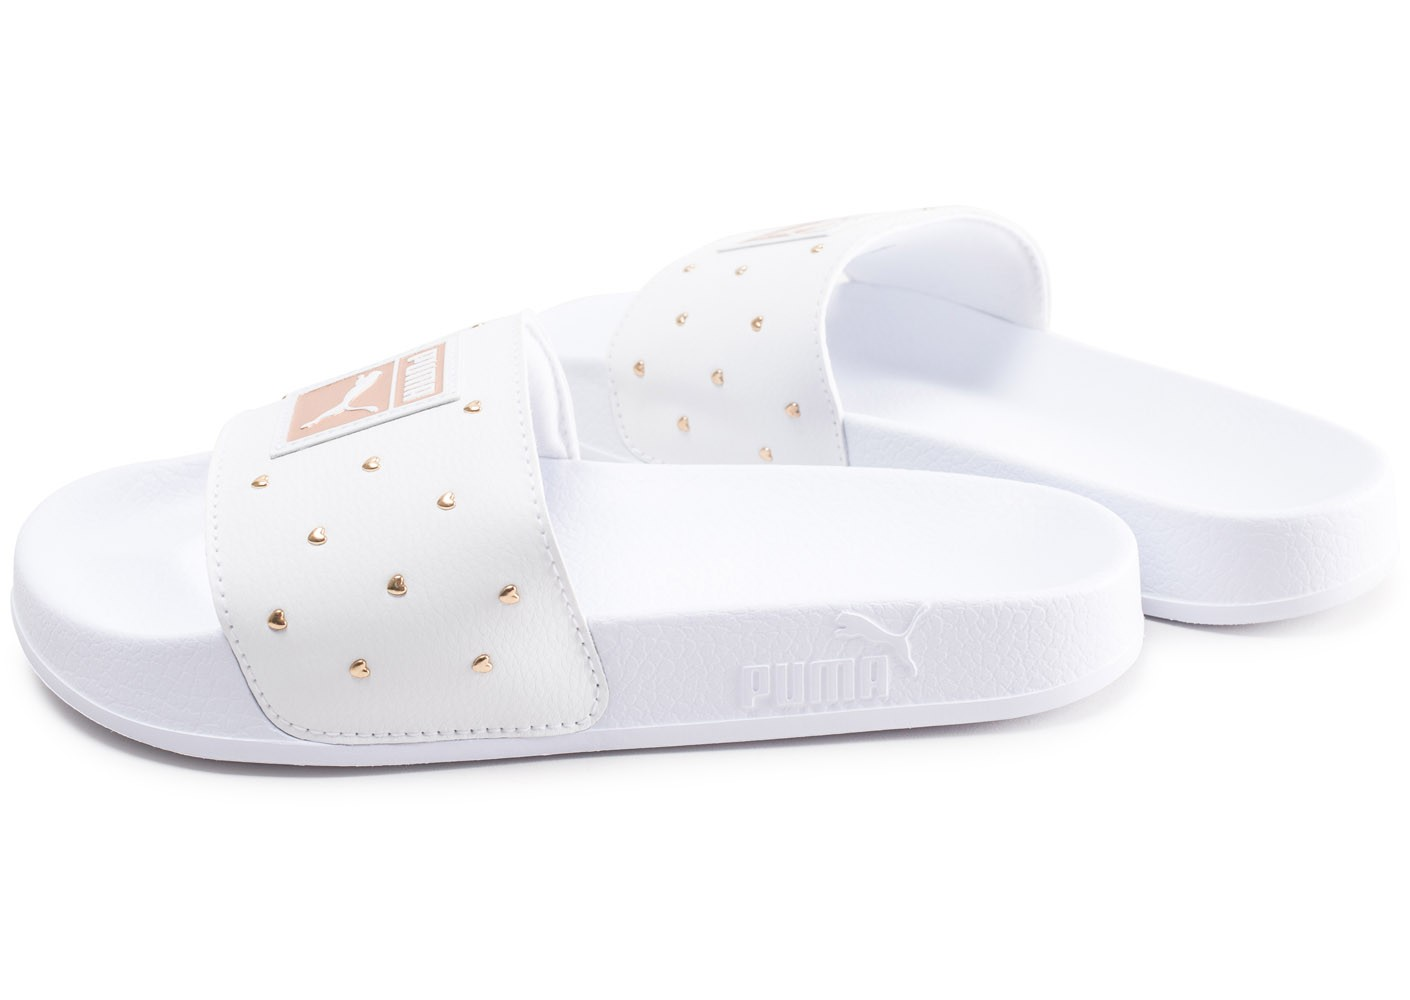 Studs Puma Leadcat Sandales Chaussures Femme Les 2weh9di Toutes Blanches 6gYbfvy7